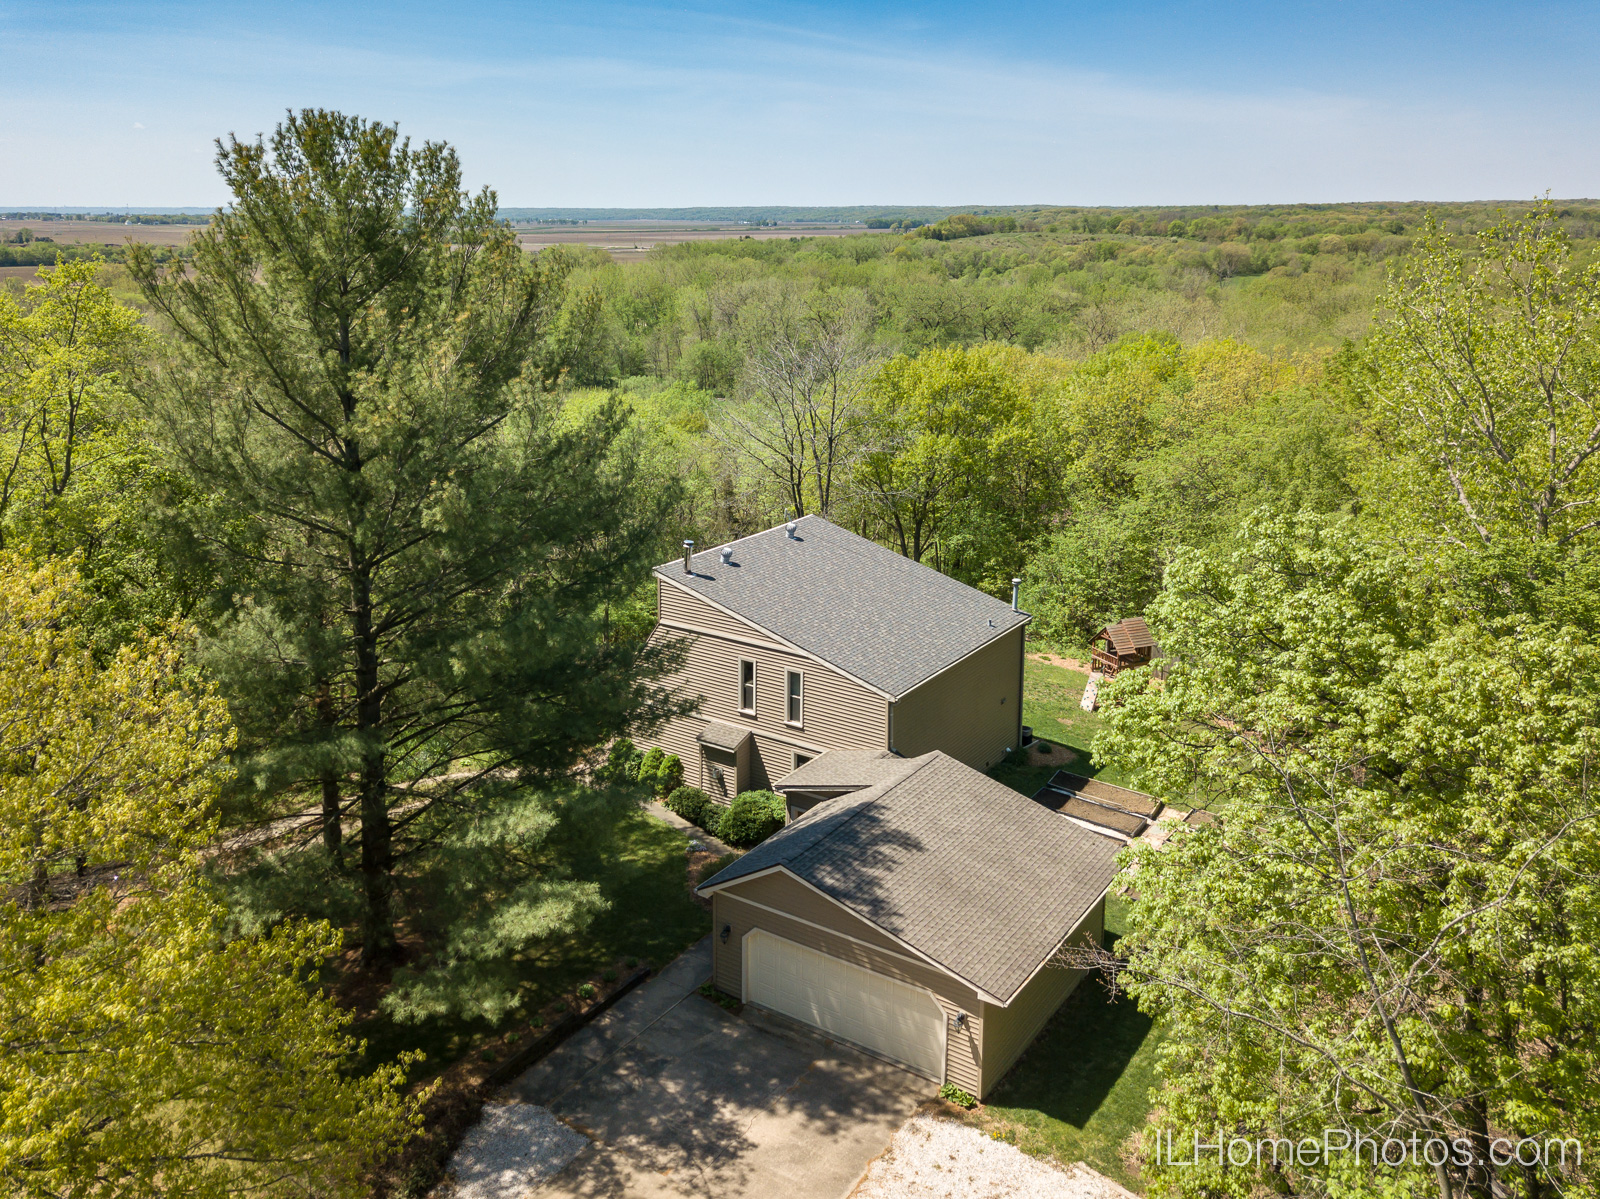 Exterior drone home photograph for real estate in Chillicothe, IL :: Illinois Home Photography by Michael Gowin, Lincoln, IL